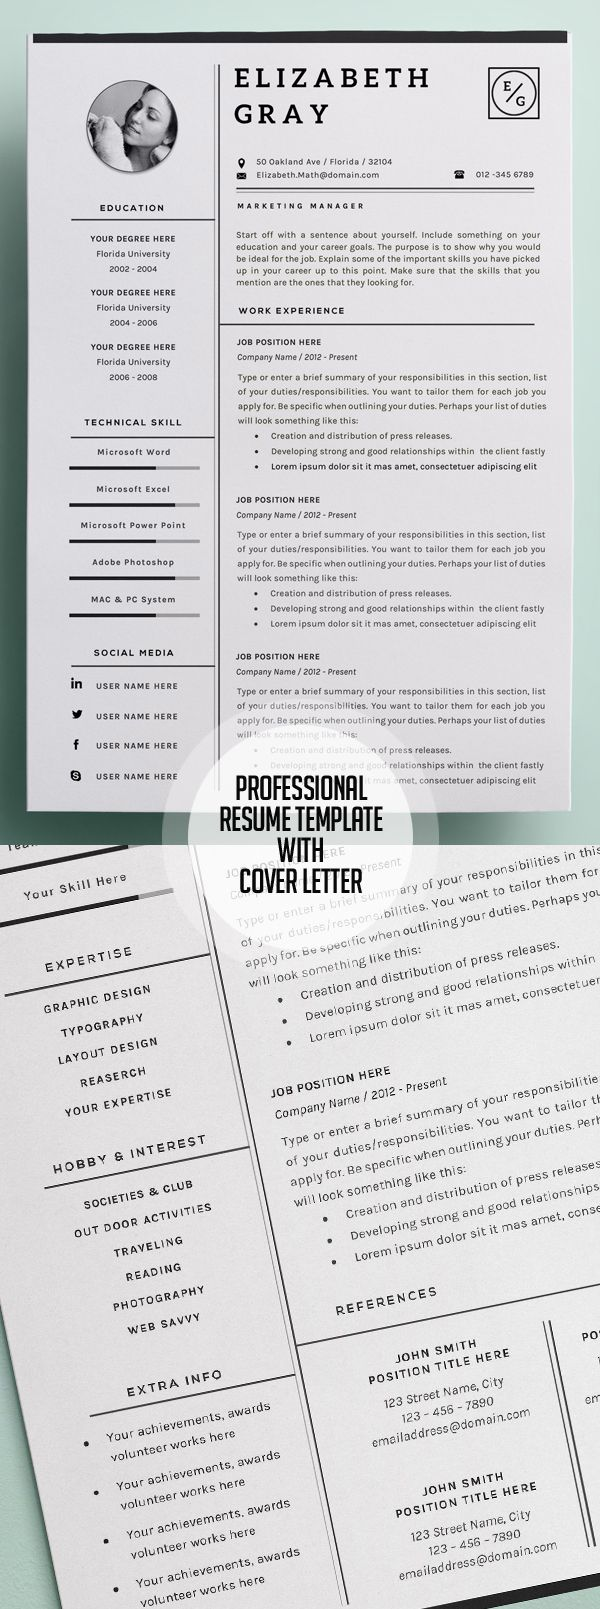 Opposenewapstandardsus  Prepossessing  Resume Ideas On Pinterest  Resume Resume Templates And  With Luxury Professional And Modern Resume Template With Page Cover Cvtemplate With Archaic Software Quality Assurance Resume Also Electronic Resume Definition In Addition Creative Resume Templates Microsoft Word And Should You Include References On Resume As Well As Hobbies And Interests On Resume Additionally Organizational Development Resume From Pinterestcom With Opposenewapstandardsus  Luxury  Resume Ideas On Pinterest  Resume Resume Templates And  With Archaic Professional And Modern Resume Template With Page Cover Cvtemplate And Prepossessing Software Quality Assurance Resume Also Electronic Resume Definition In Addition Creative Resume Templates Microsoft Word From Pinterestcom